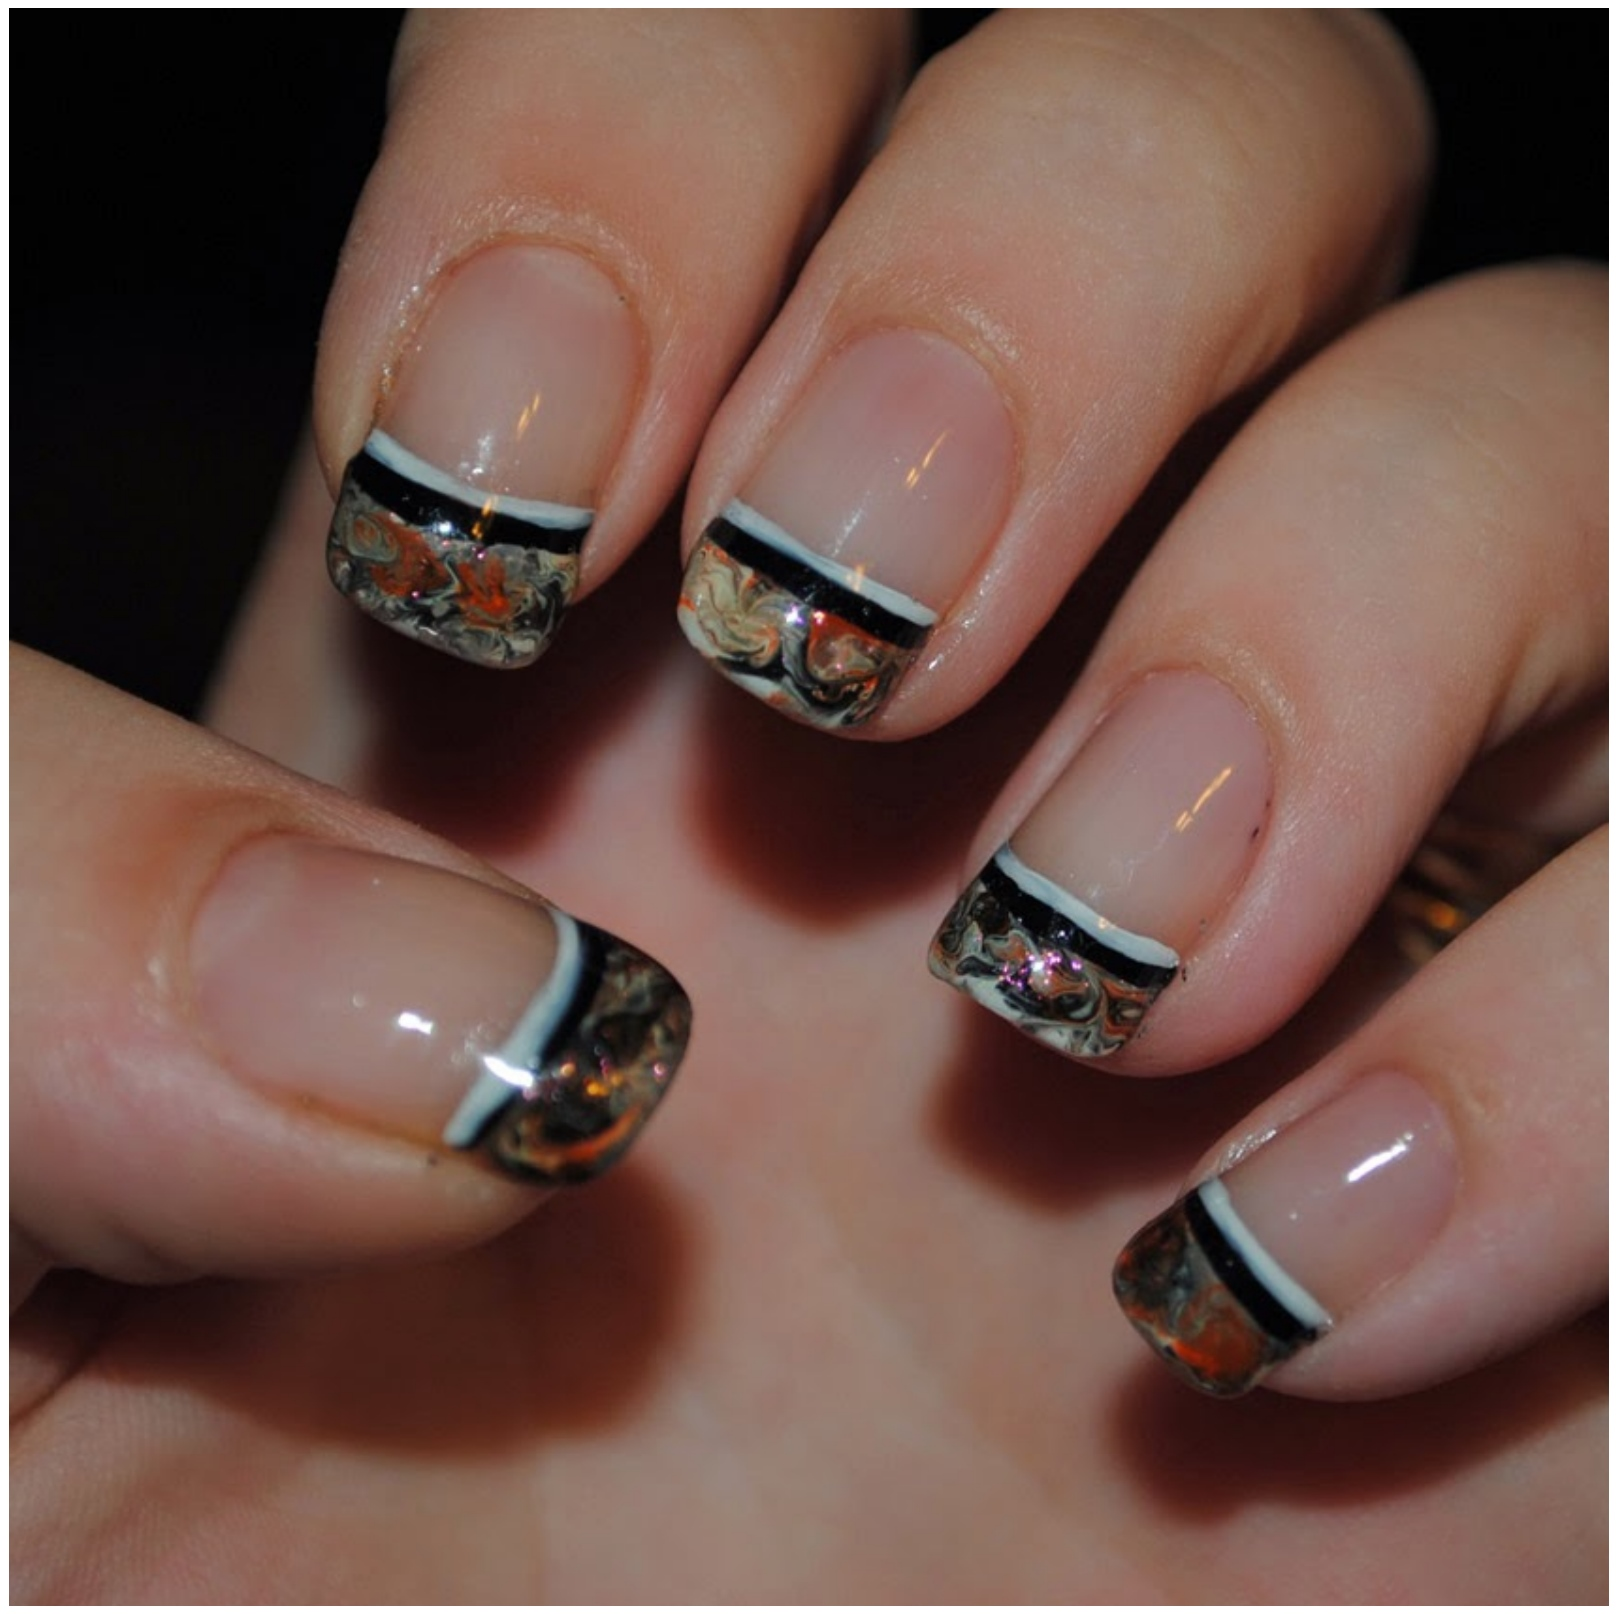 Best Nail Designs Pictures 2016 2017 For Girls: Best Nails Designs 2017 Try In Future Fashion